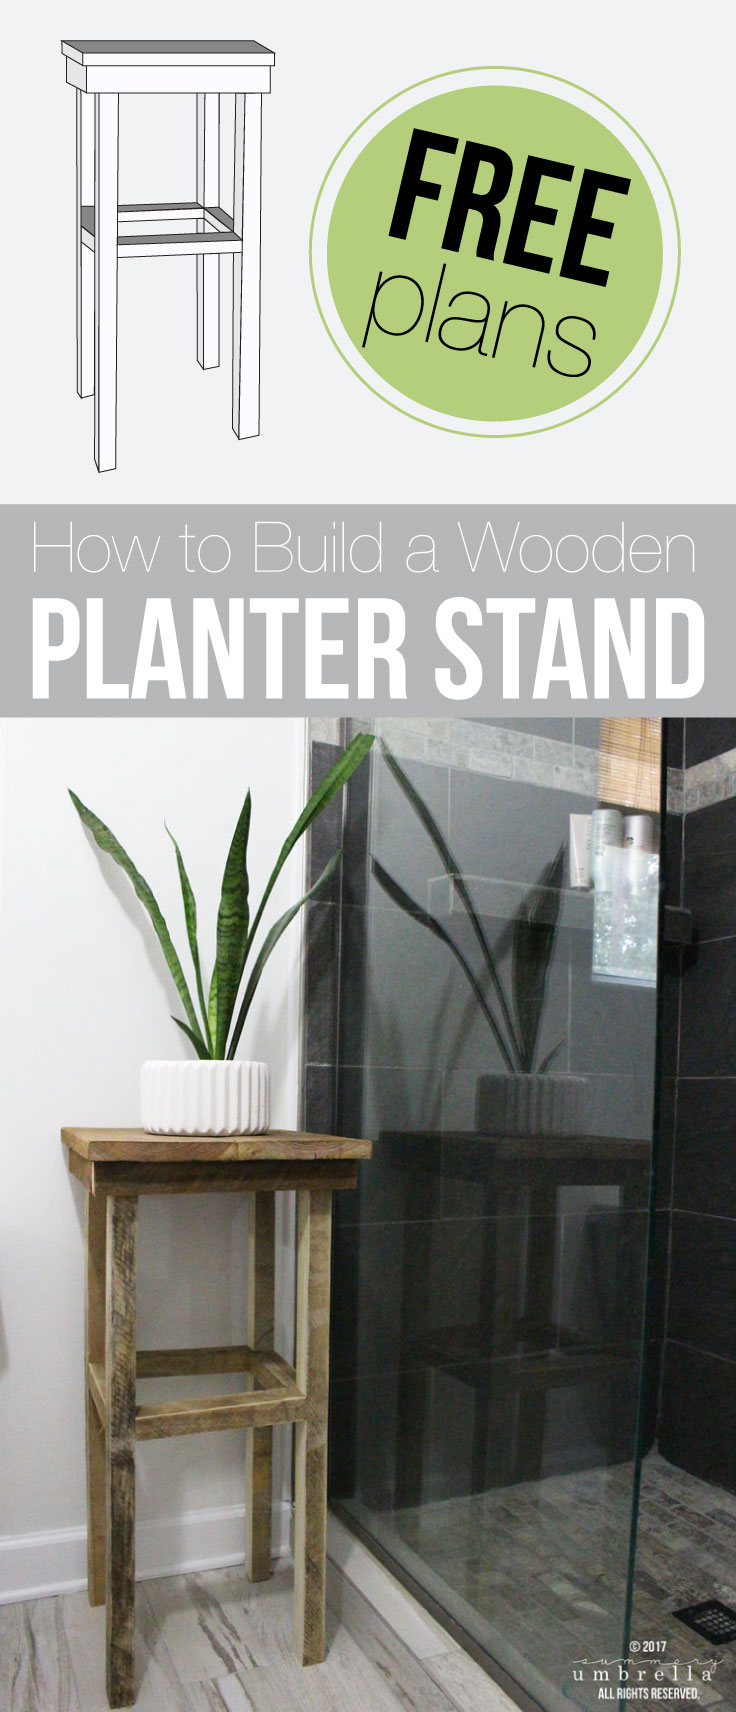 Create your own wooden planter stand that's perfect for any room of the house, or even display it outdoors! My favorite place? The bathroom! Learn how to create your own with these free plans!